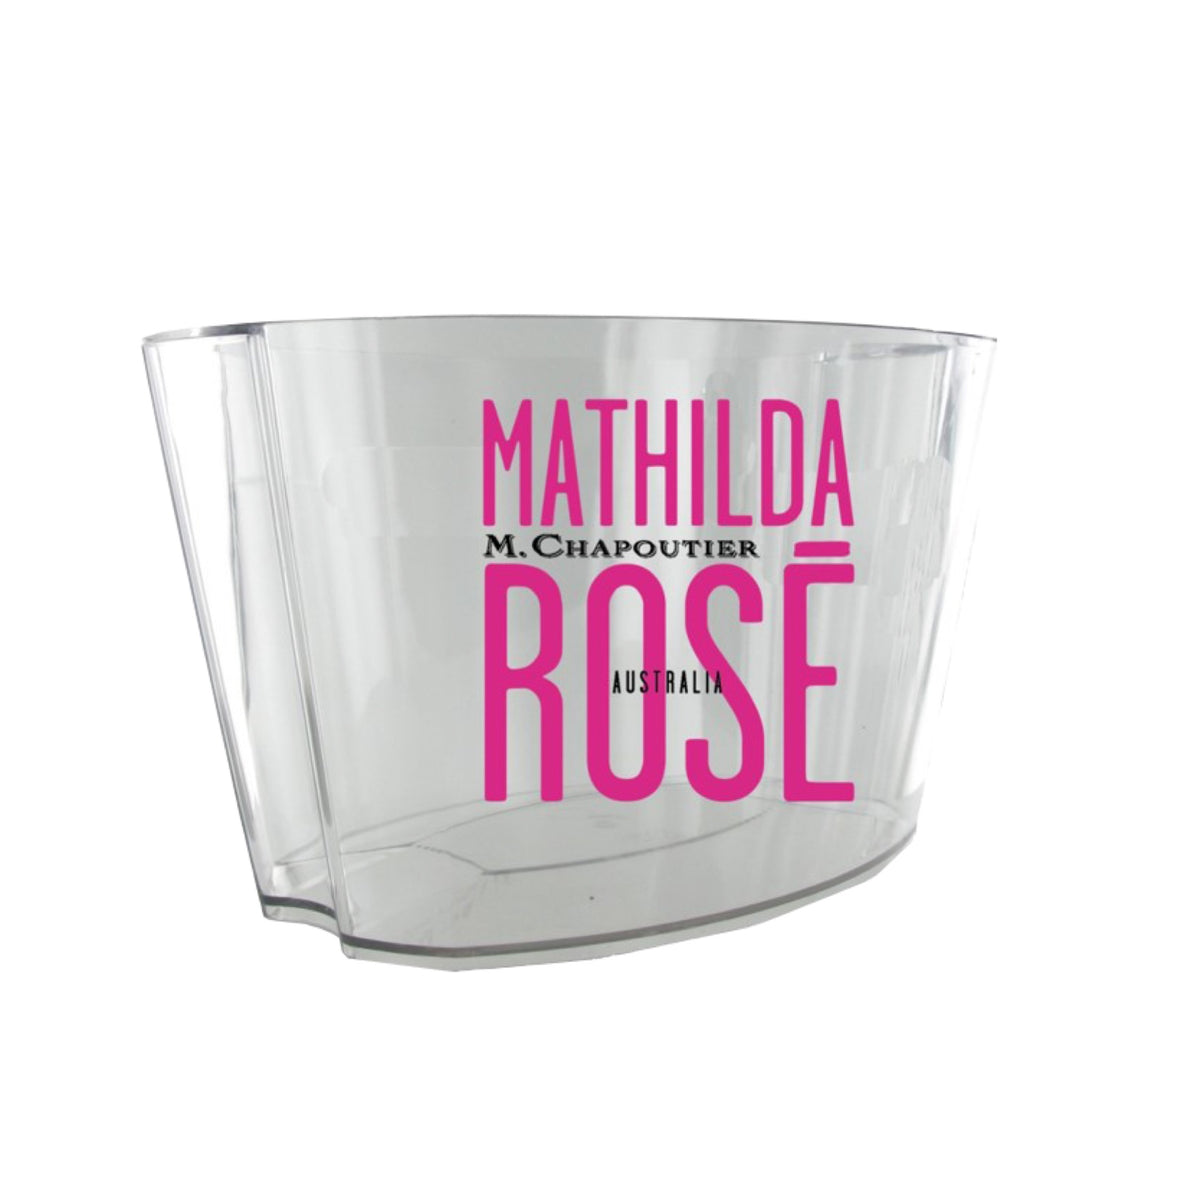 "M. CHAPOUTIER - Ice bucket ""Mathilda Rose"""